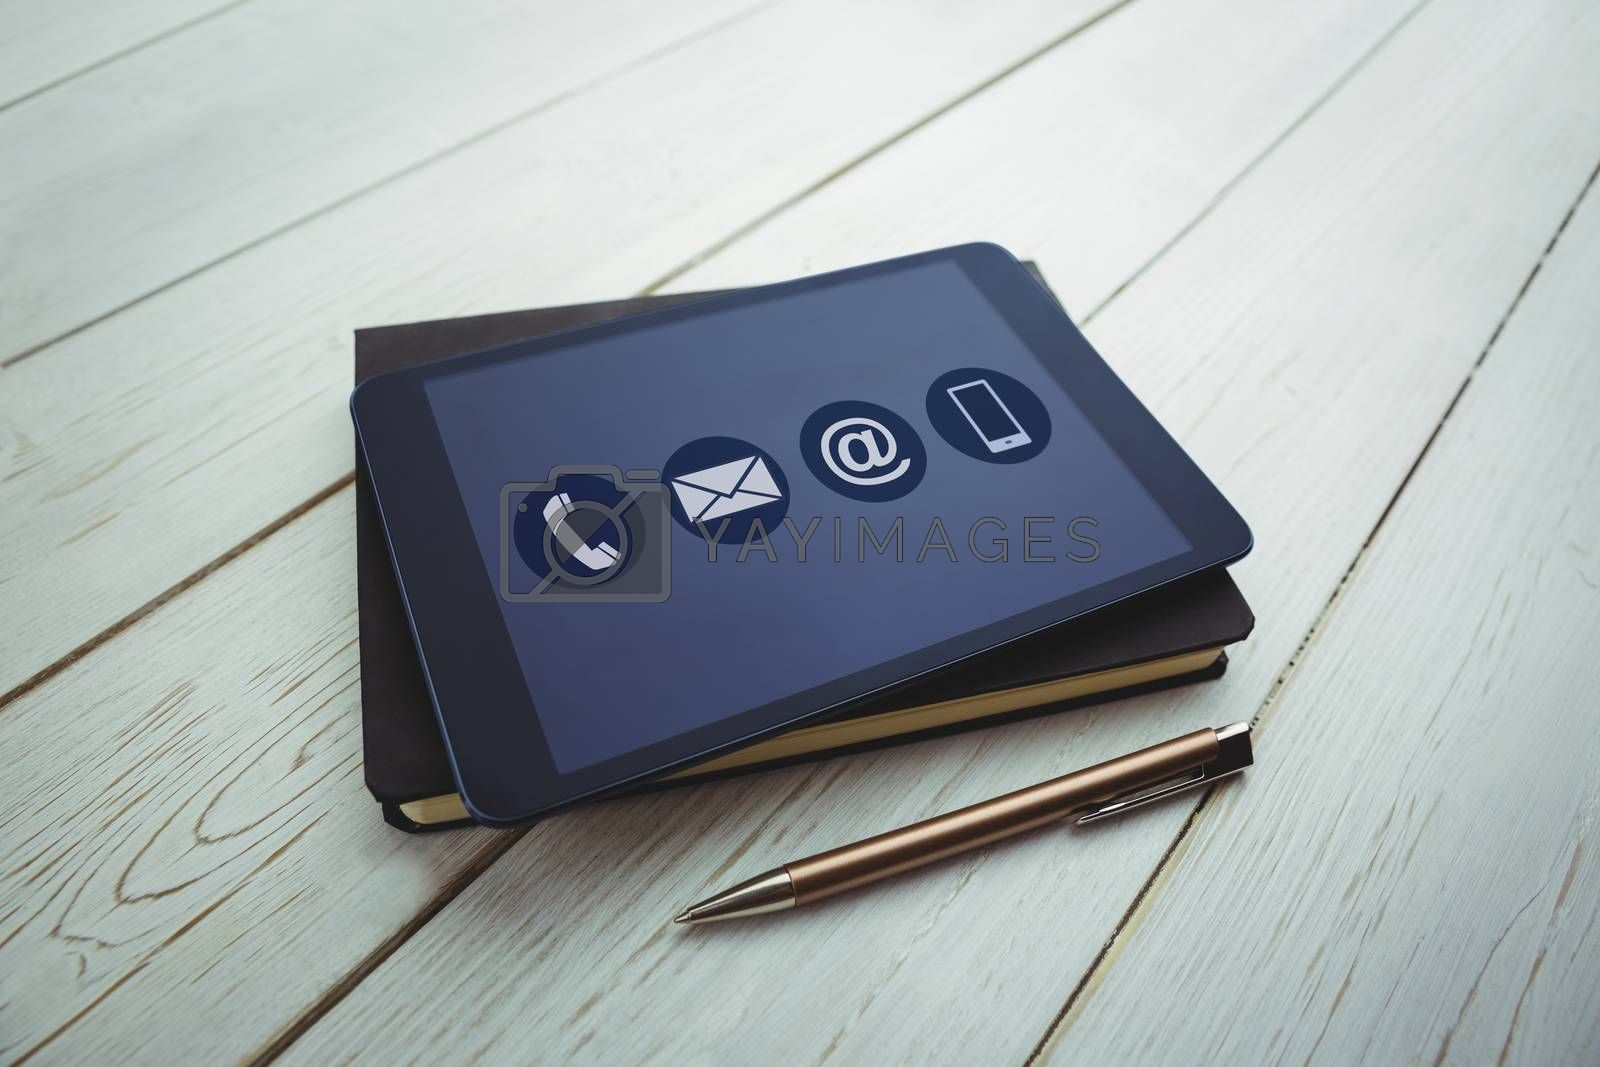 Communication apps against view of a book and tablet lying on desk